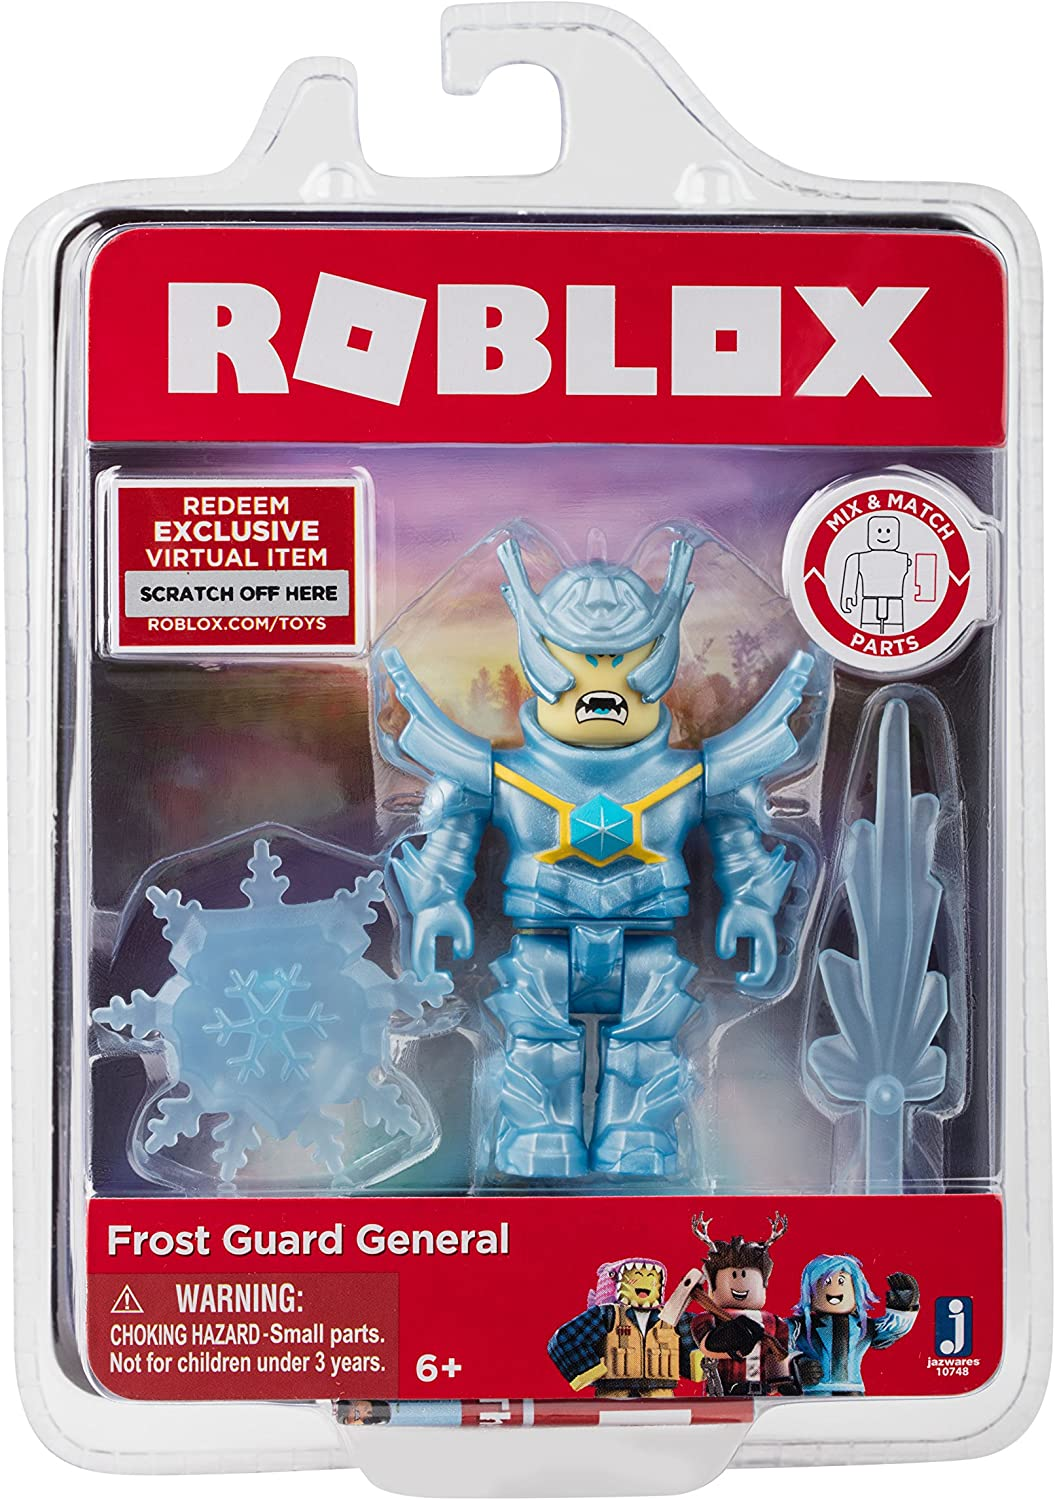 Roblox Jazwares Con Amazon Com Roblox Frost Guard General Figure Pack Toys Games